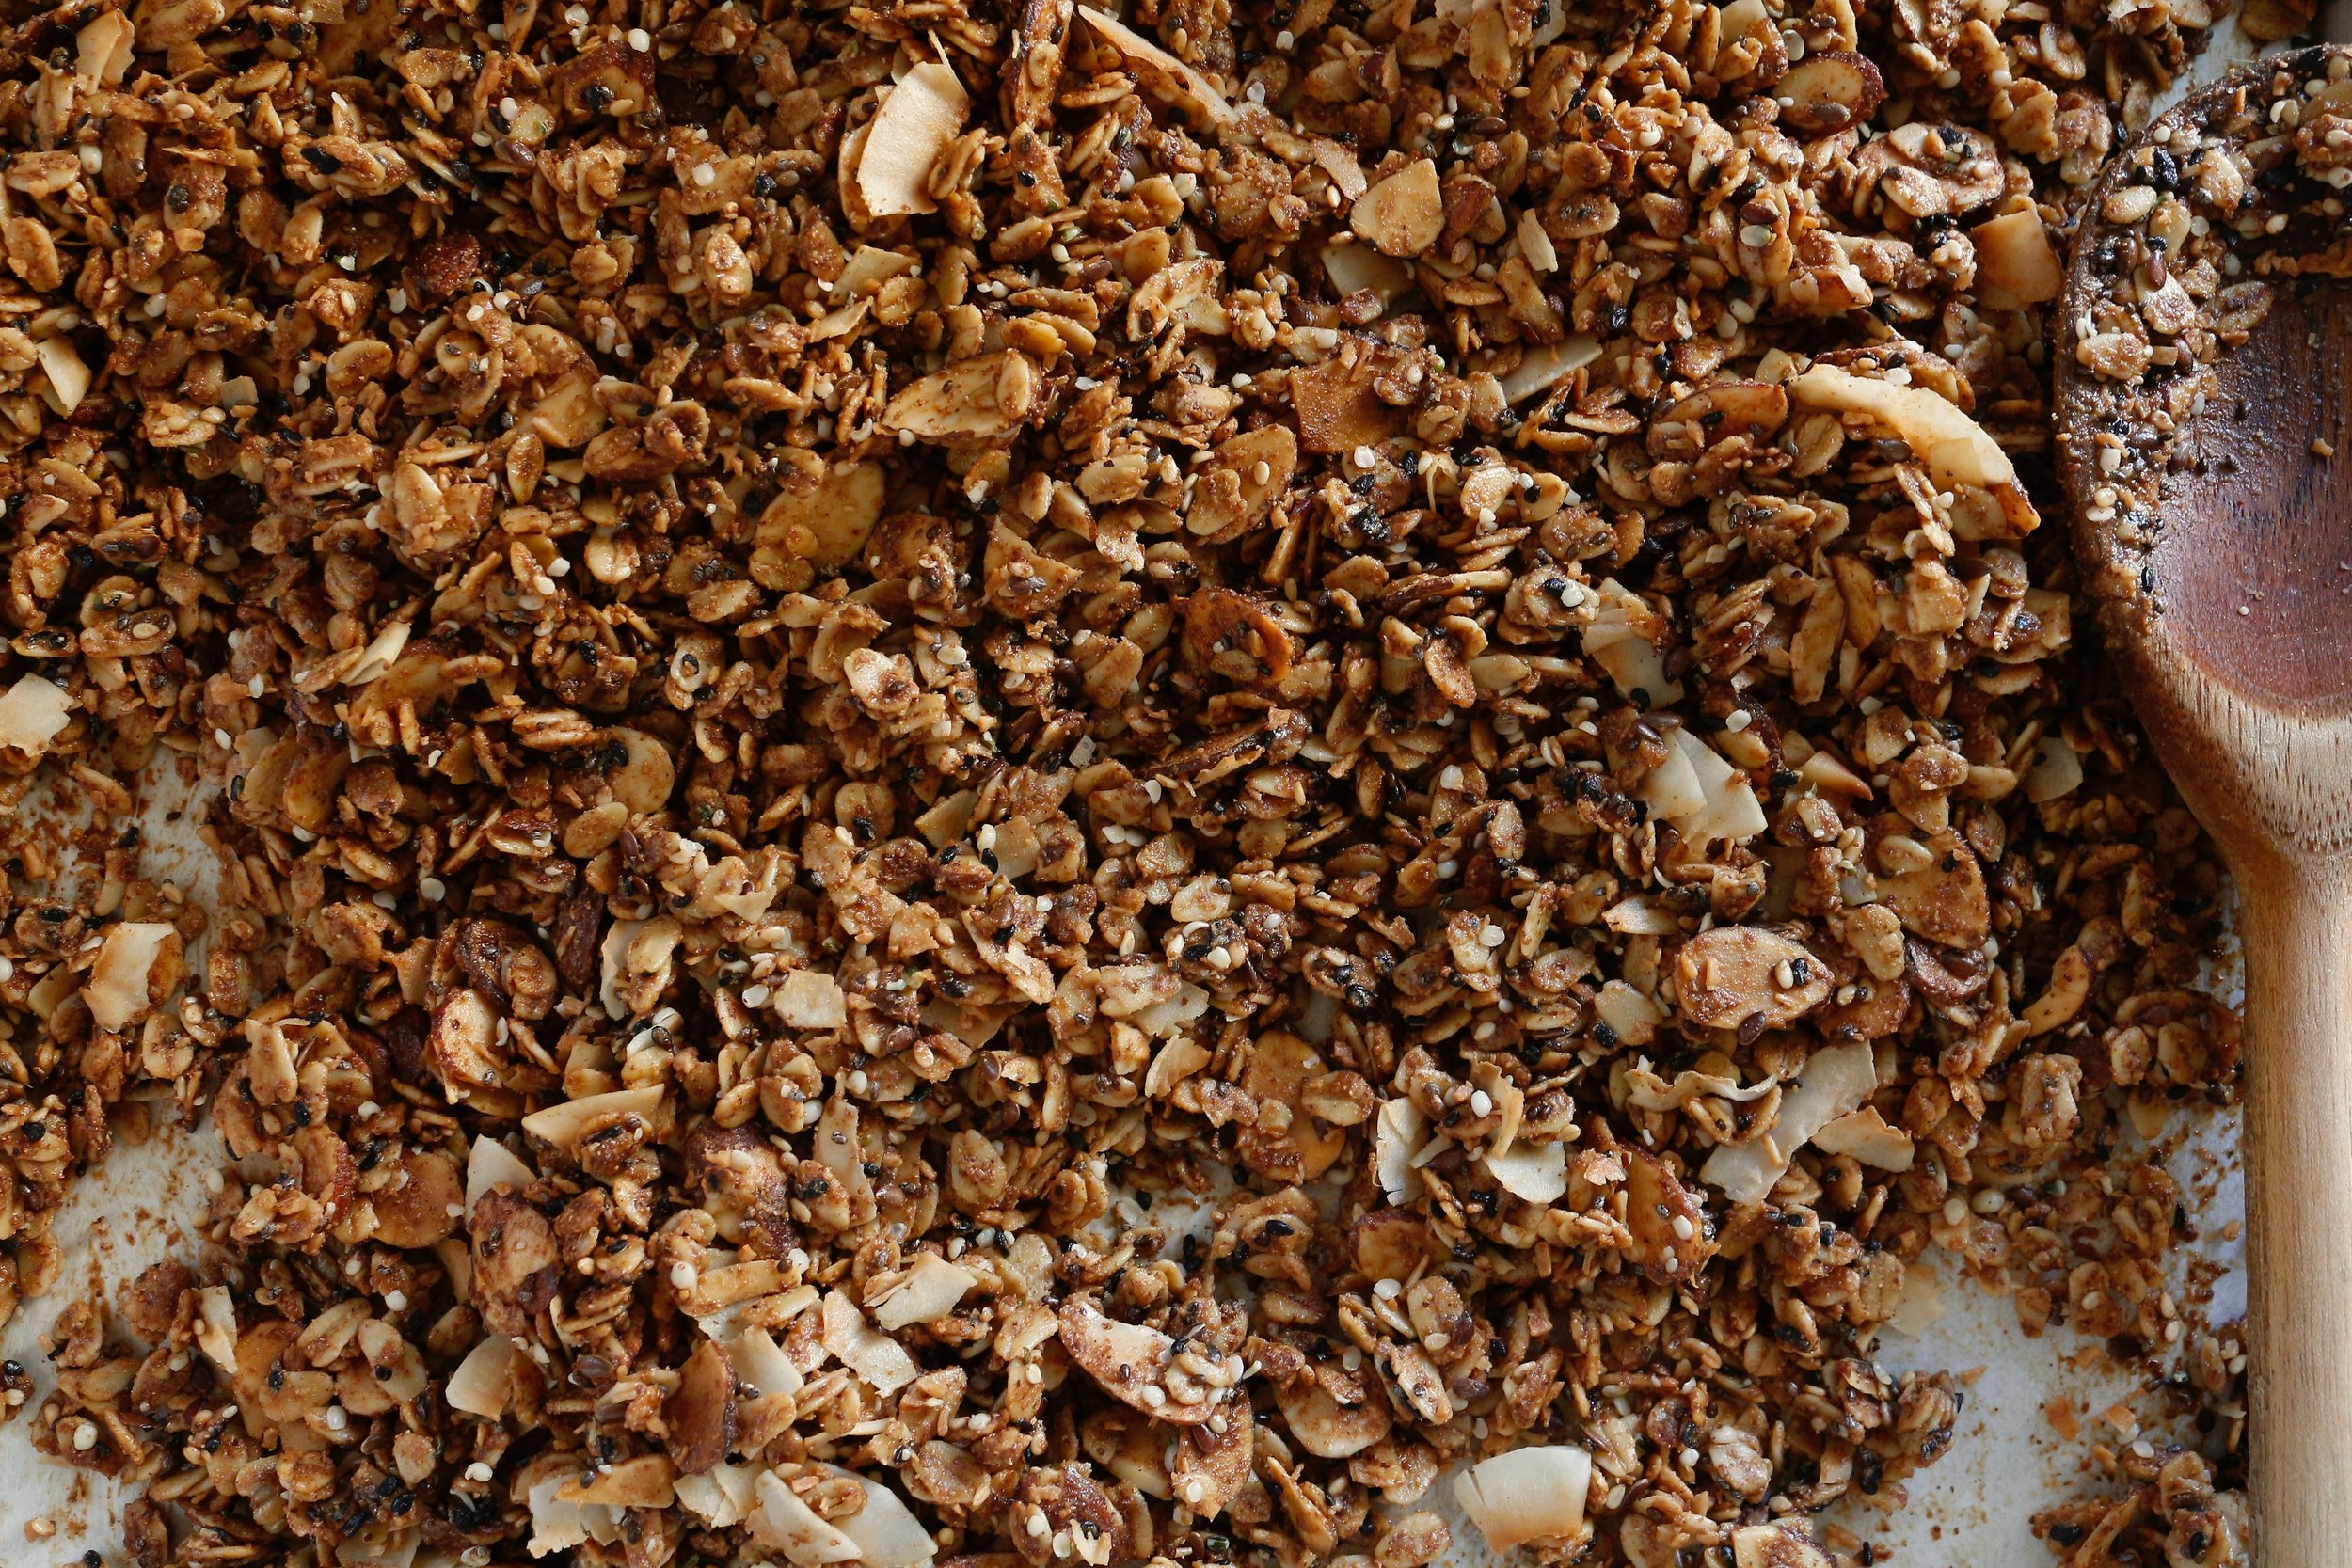 "Sometimes granola gets a bad rap- everyone loves it, but then there's the thing about it having ""soooo many calories."" Sure, if calorie counting and pre-packaged, mass-produced granola is what you're used to then you're probably right. But the beauty of cooking from scratch is not just that it's soul-feeding, it's that you have control over what to include in/ exclude from your food.  This recipe bridges the gap between sweet and savory with flaky sea salt and natural sweeteners like coconut sugar and maple syrup. Floral notes in cardamom complement seasonal fruits at breakfast and sharp vinaigrettes at lunch. Be sure to toast the coconut separately, as it cooks much faster than the rest of the mixture and would definitely burn after 30 minutes. Feel free to swap out some of the seeds and nuts based on what you have on hand, but try to keep the total weight of the uncooked oat mixture to about 495g to keep a good ratio of wet to dry ingredients.     Recipe     makes about 5 cups   335g Bob's Red Mill extra thick rolled oats  80g sliced almonds, raw  20g white sesame seeds, raw  20g black sesame seeds, raw  20g chia seeds  20g flax seeds  20g unsweetened large coconut flakes, raw  20g unsweetened fine coconut flakes, raw  20g hemp hearts, raw  180g roasted unsalted smooth almond butter  100g virgin coconut oil  15g maple syrup  25g coconut sugar  1/2 teaspoon freshly ground cardamom  5g flaky sea salt        Method    Preheat oven to 350F degrees. Place coconut flakes on a baking sheet lined with parchment paper and toast until perfectly golden brown and fragrant, about 6 minutes. Transfer toasted coconut to a small bowl and combine with hemp hearts and set aside.   In a large bowl, combine oats, sliced almonds, sesame seeds, flax seeds, and chia seeds.   In a small pot, combine almond butter, coconut oil, maple syrup, coconut sugar, and ground cardamom and heat over medium until the coconut oil is completely melted and well combined. Crush the sea salt between your fingers and stir into the warm almond butter mixture. Pour the almond butter mixture over the oat mixture and stir until everything is evenly coated. Transfer to the baking sheet and spread into an even layer, then season again with a big pinch of flaky sea salt, leaving the crystals larger this time. Bake for 30 minutes, tossing halfway through. After 30 minutes, remove from the oven and stir in the toasted coconut and hemp hearts until evenly incorporated.   Allow granola to cool at room temperature before transferring to an airtight container.   Serve with yogurt and fruit, your milk of choice, or sprinkle into salads for crunch."